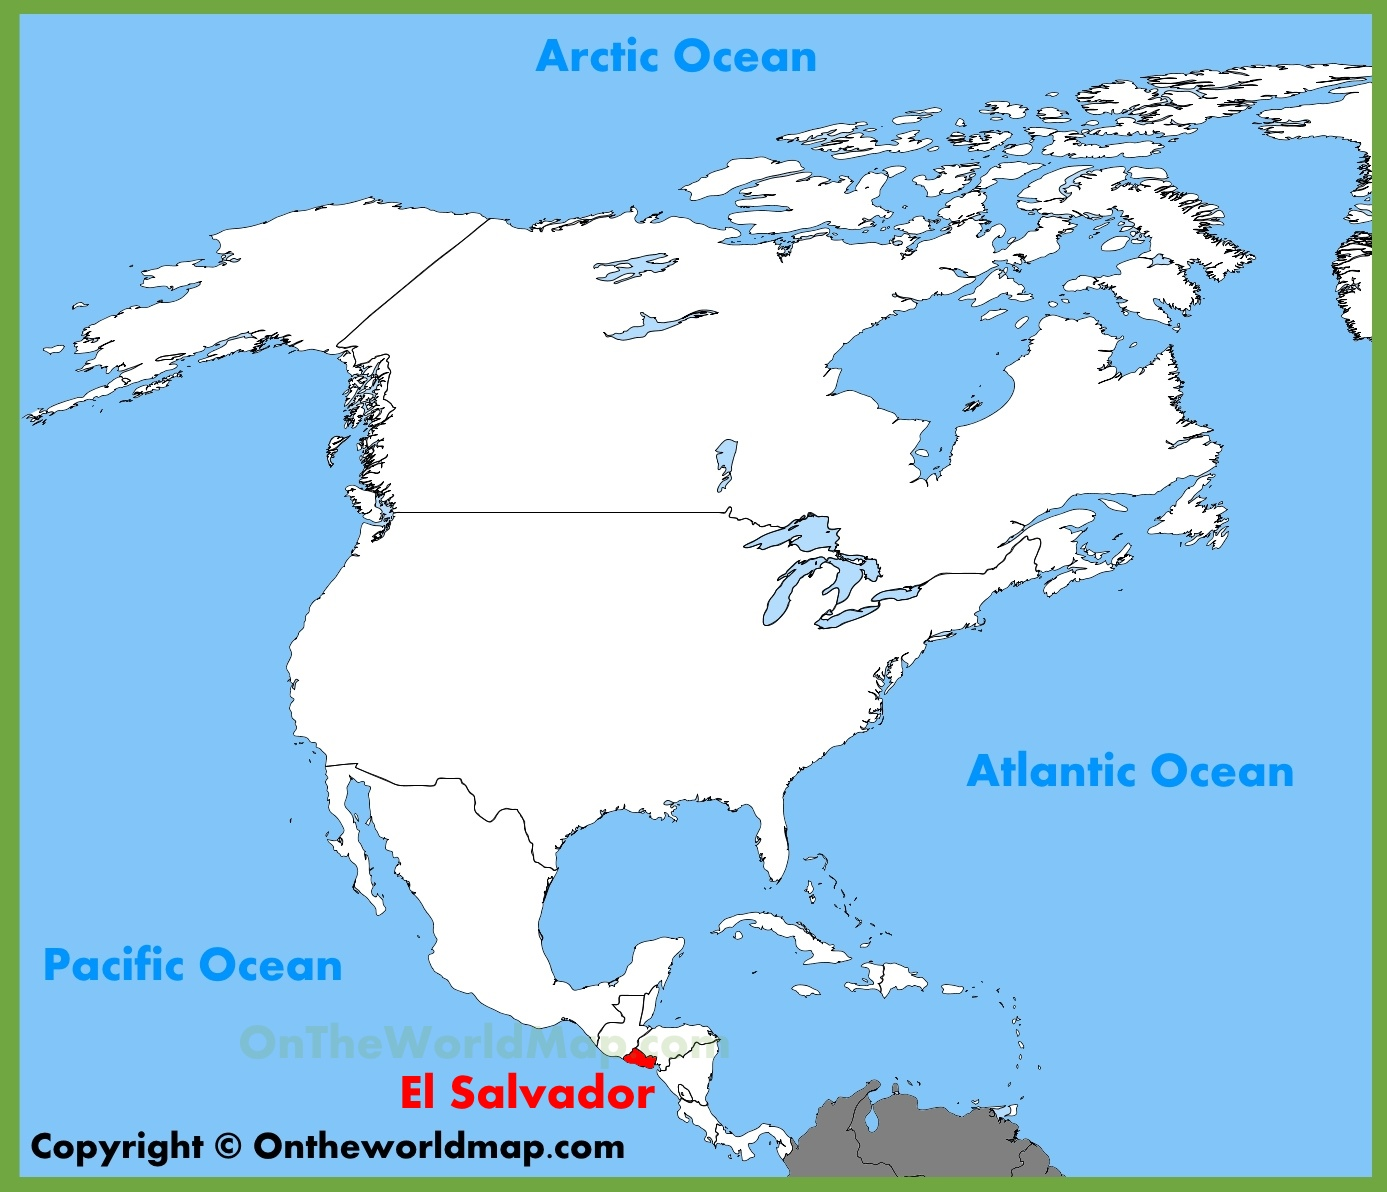 El Salvador On Map El Salvador location on the North America map El Salvador On Map